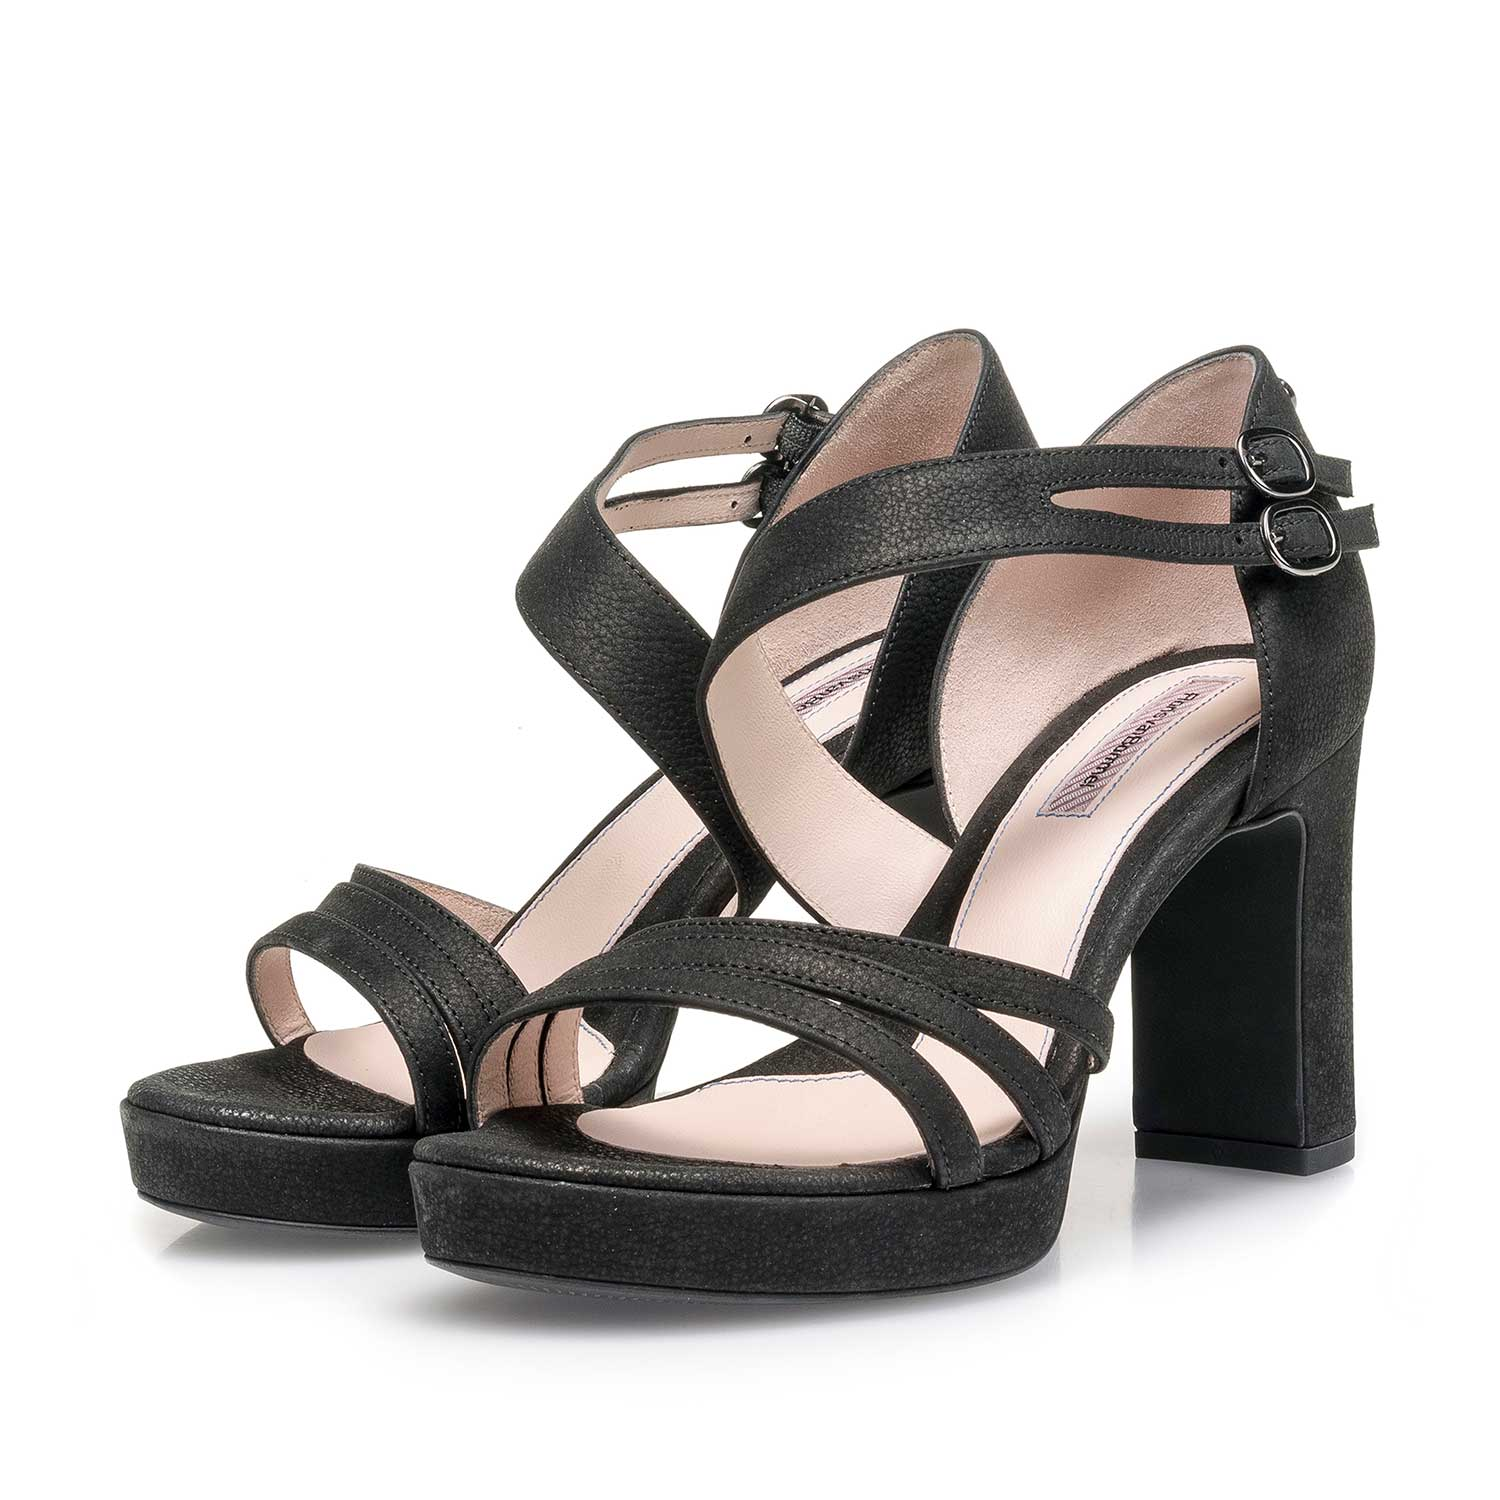 85902/02 - Black slightly structured high-heeled nubuck leather sandal